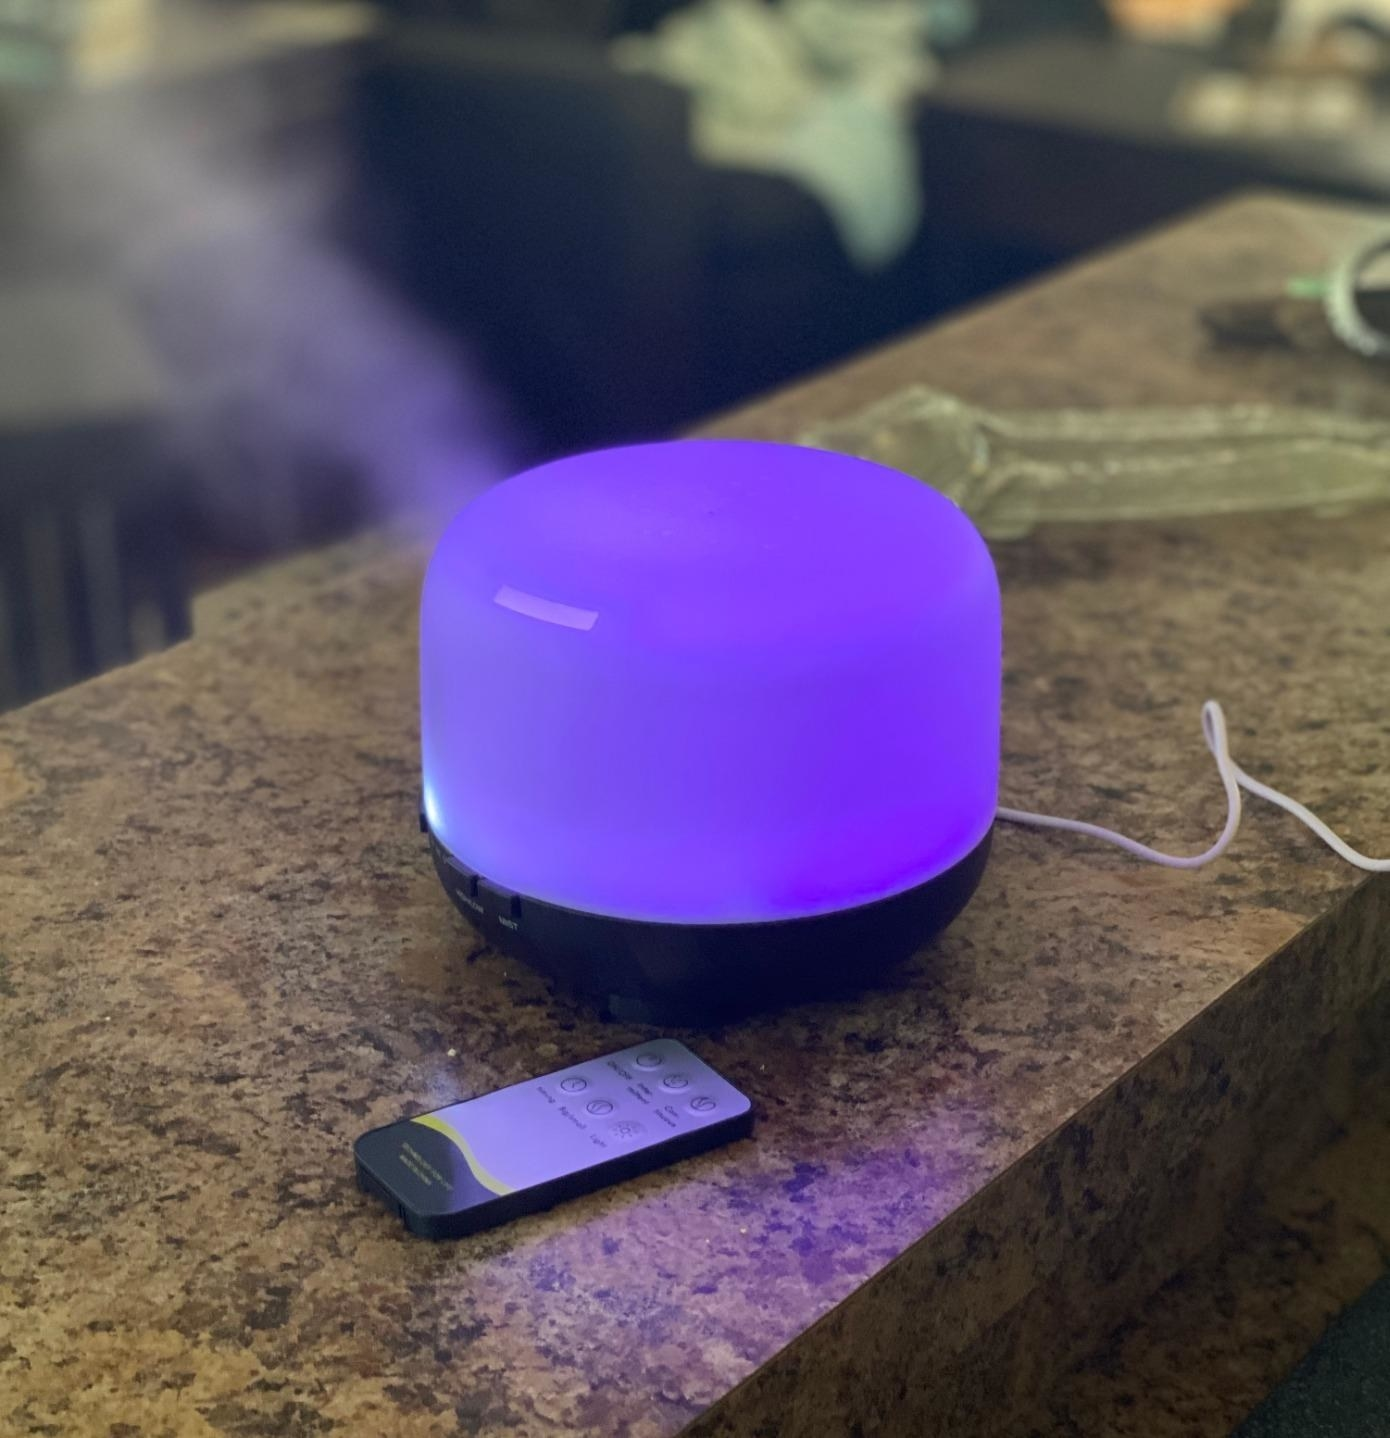 a reviewer's essential oil diffuser glowing purple